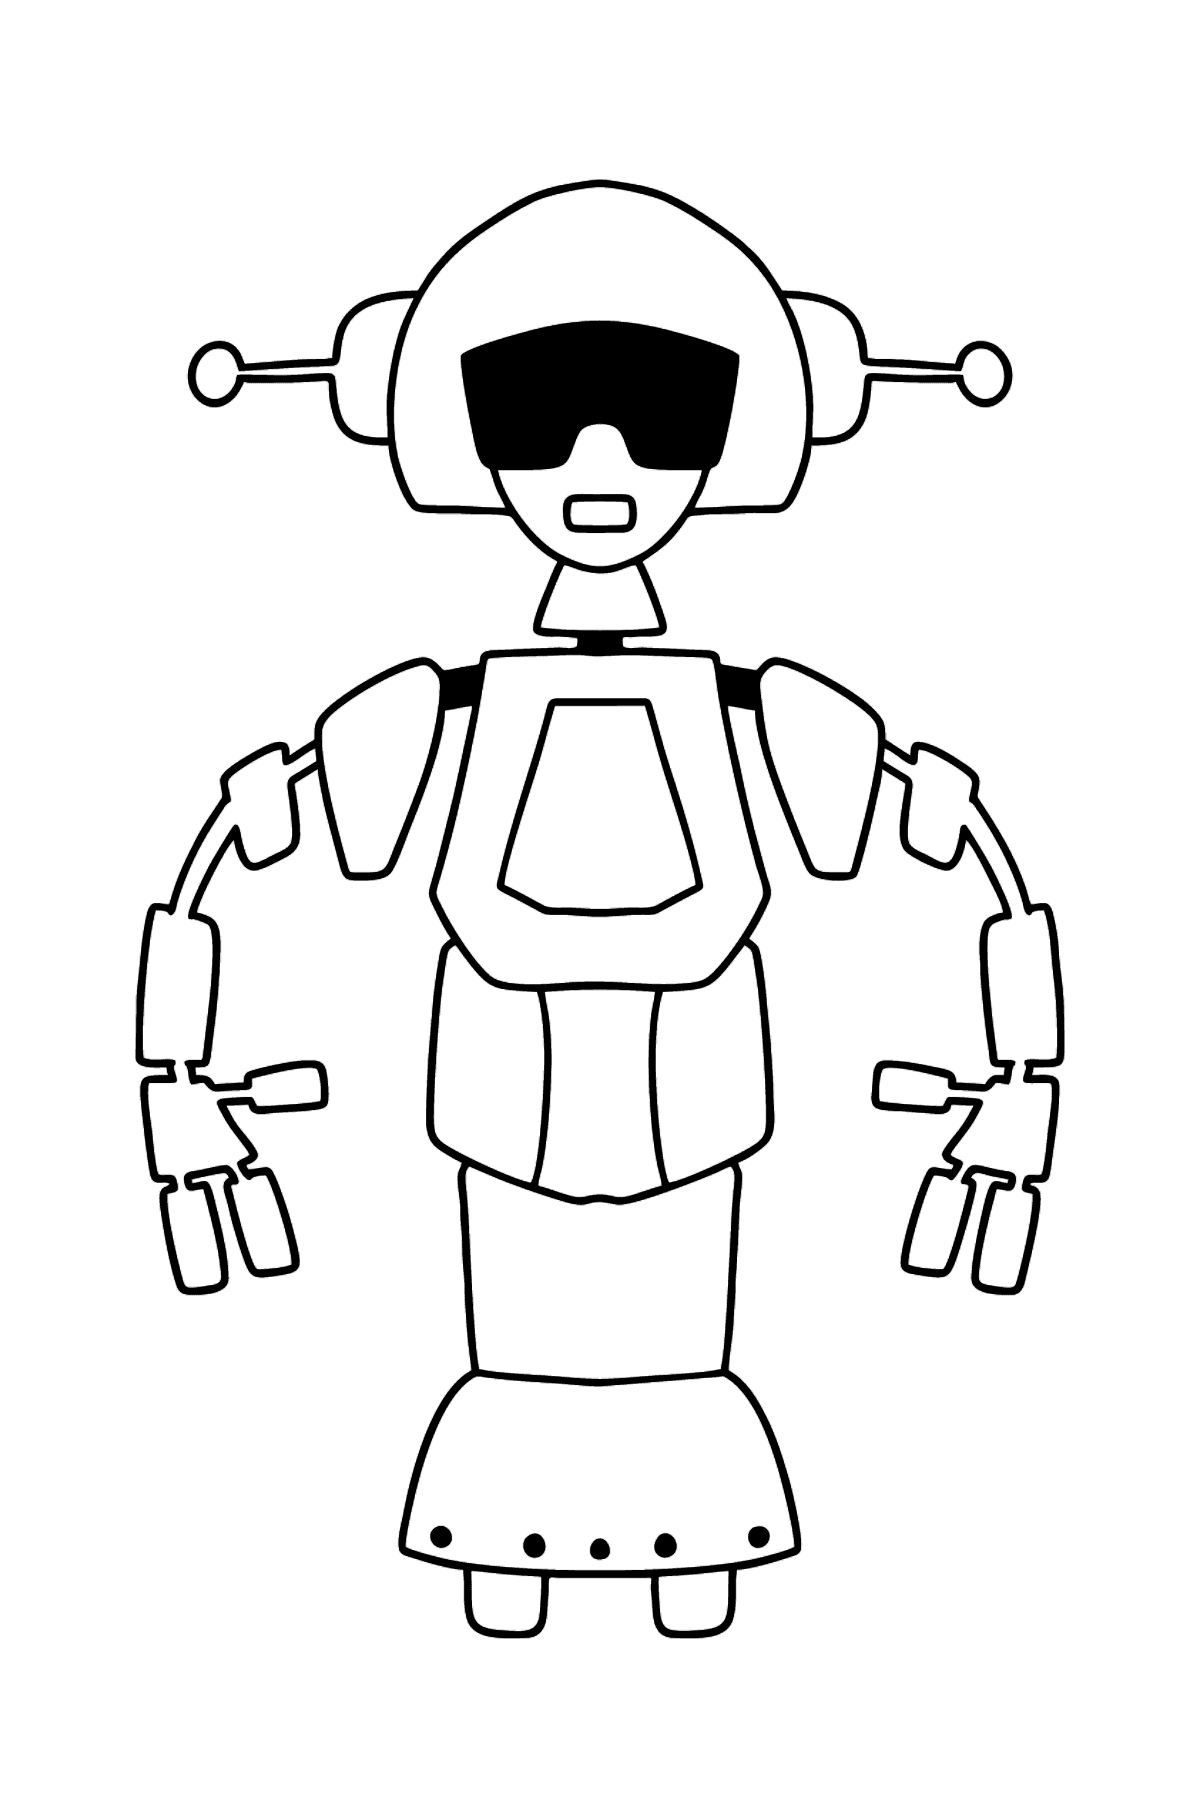 Robot Girl coloring page - Coloring Pages for Kids